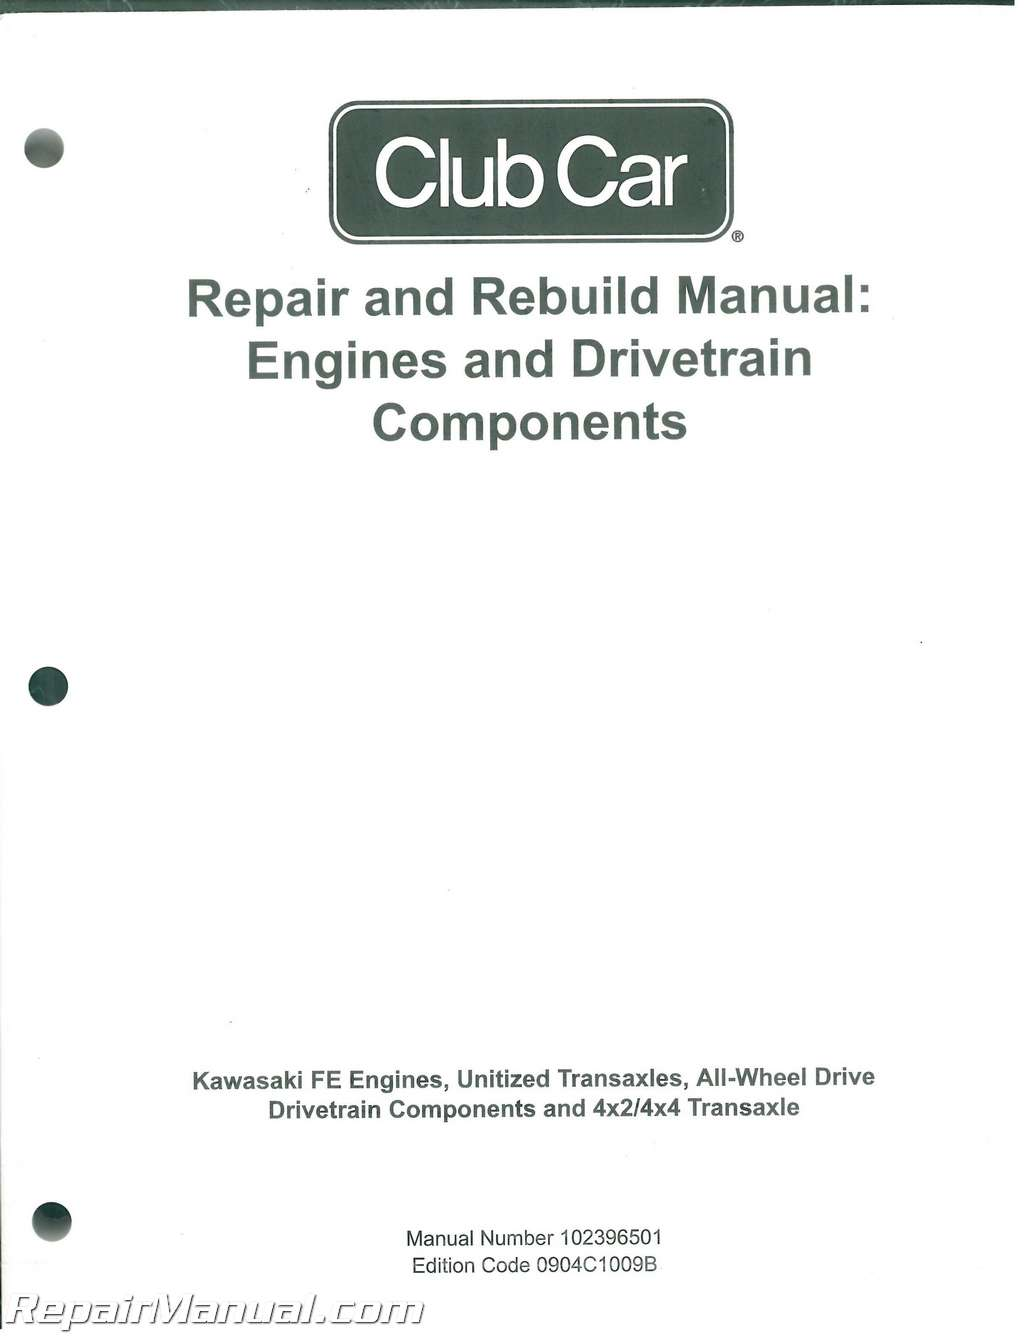 club car repair rebuild manual engine drivetrain components rh ebay com Club Car Engine Parts Club Car Kawasaki Engine Parts